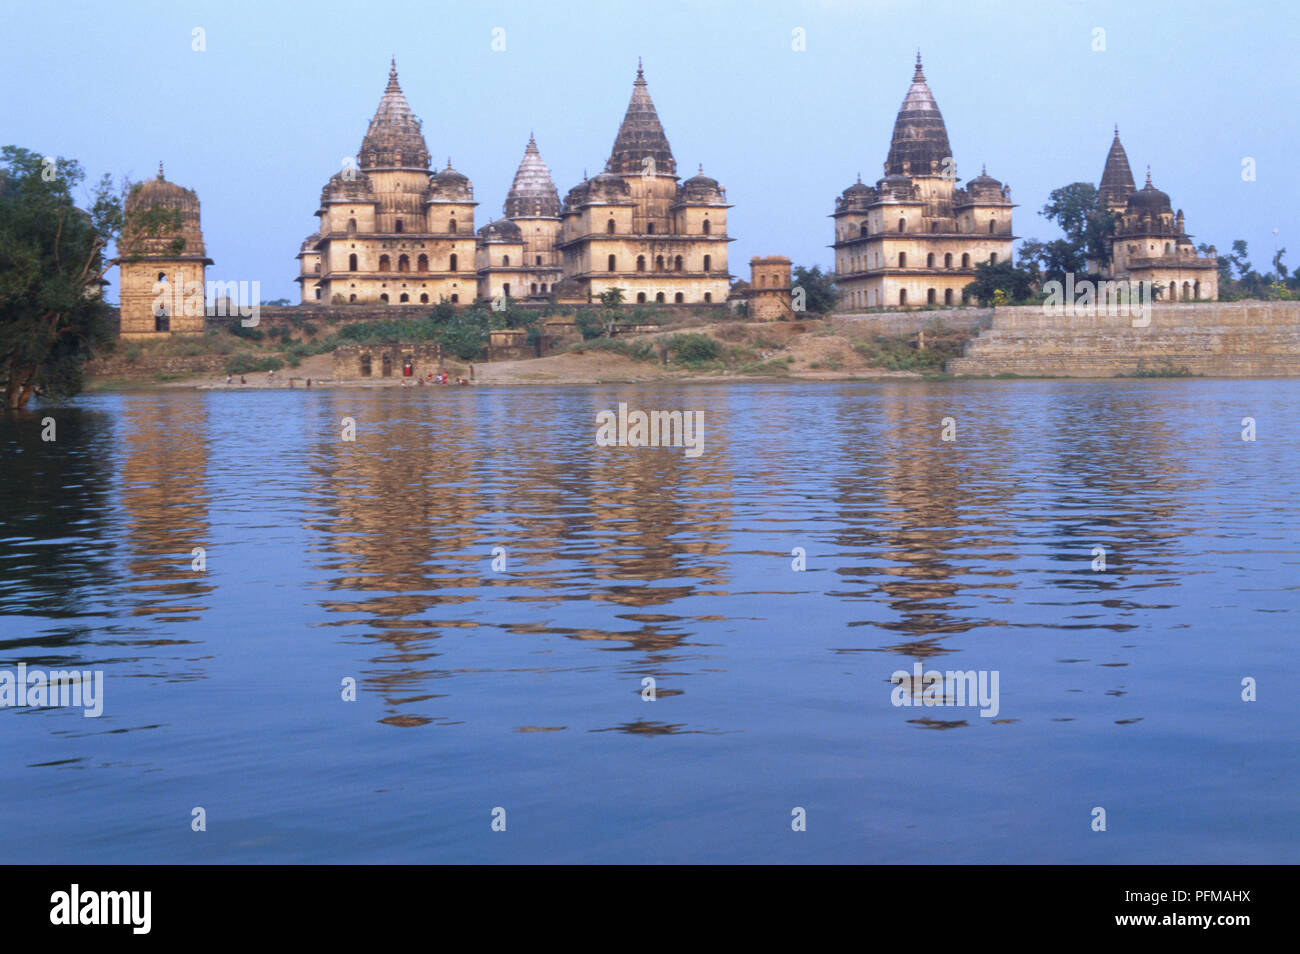 India, Orchha, the early capital of the Bundela kings, picturesquely situated on the banks of the Betwa, temples, are blend of fort and temple styles, soaring spires, red buildings becoming blackened at top, reflecting on river in foreground. - Stock Image